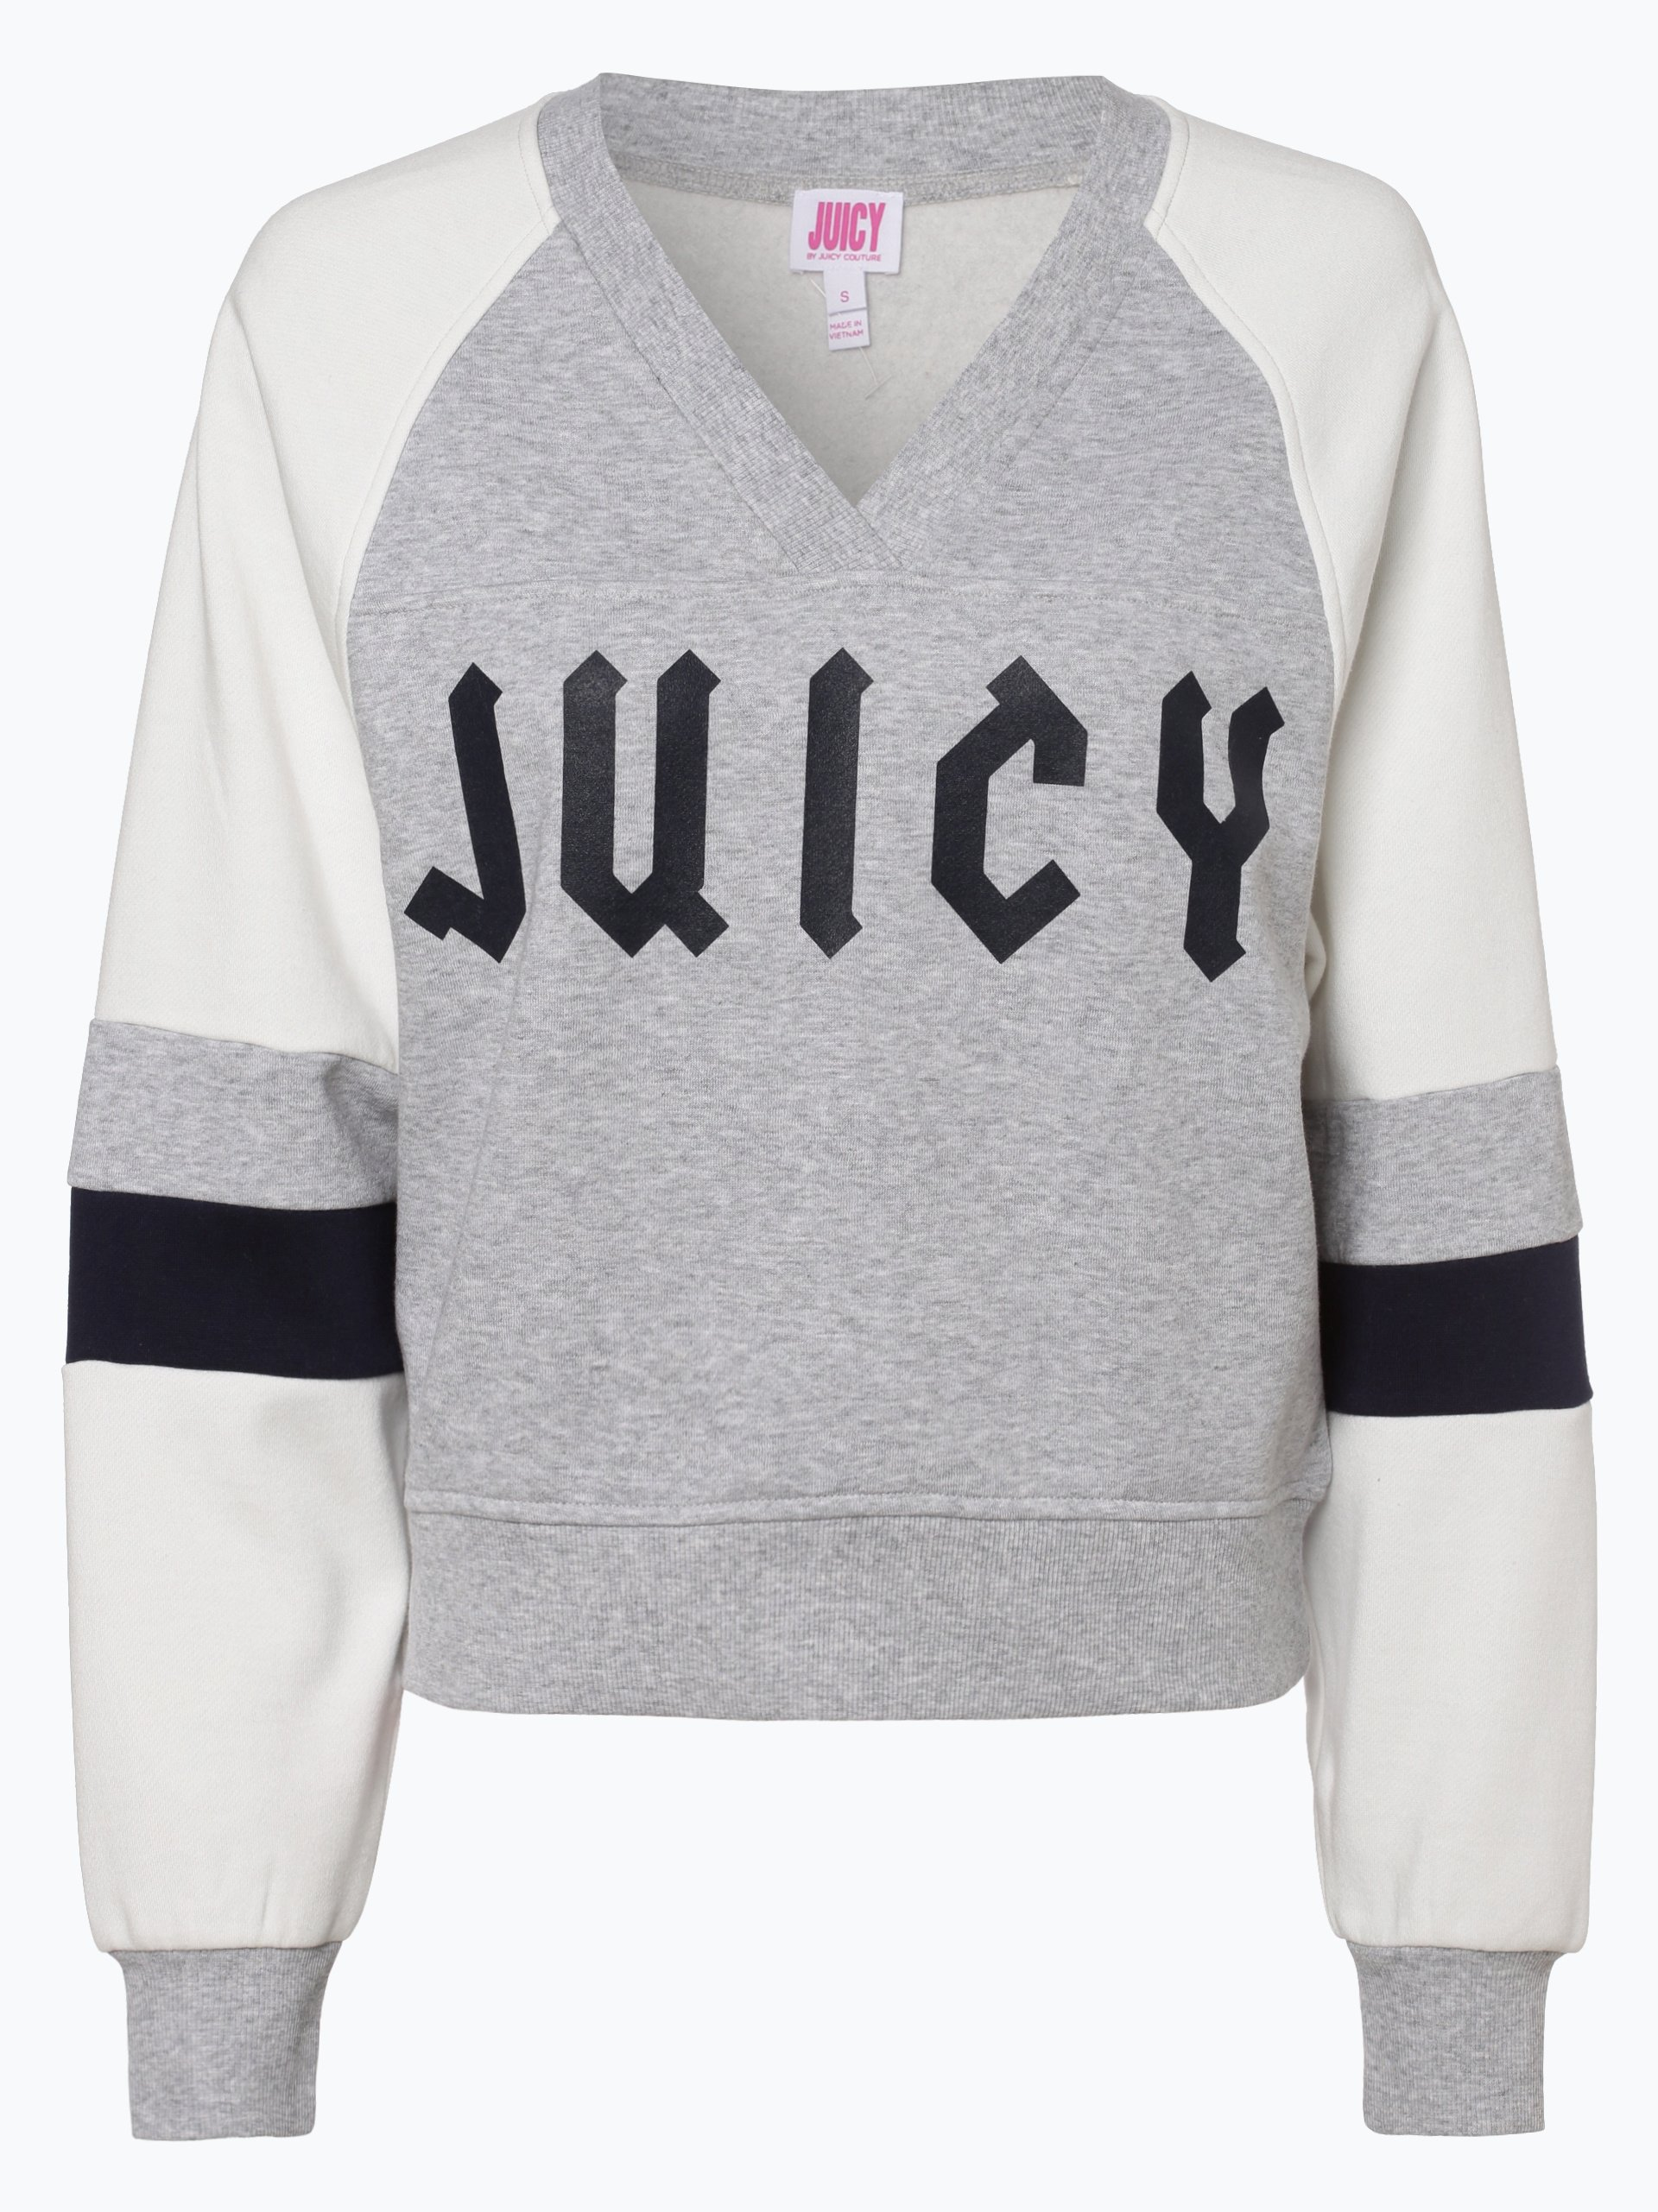 Juicy by Juicy Couture Damska bluza nierozpinana